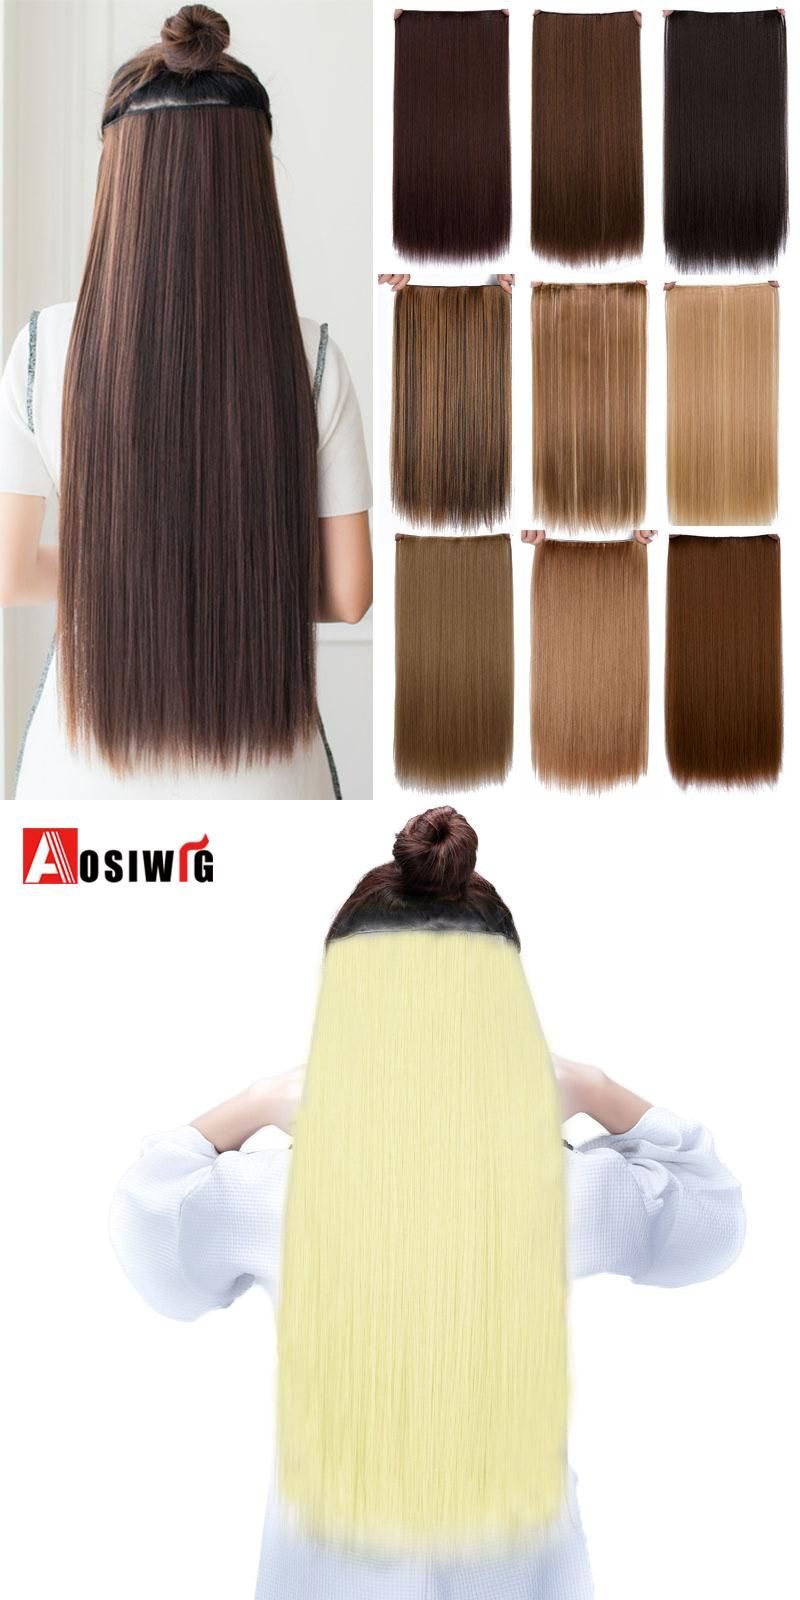 Aosiwig 5 Clips On Clip In Hair Extensions Heat Resistant Synthetic